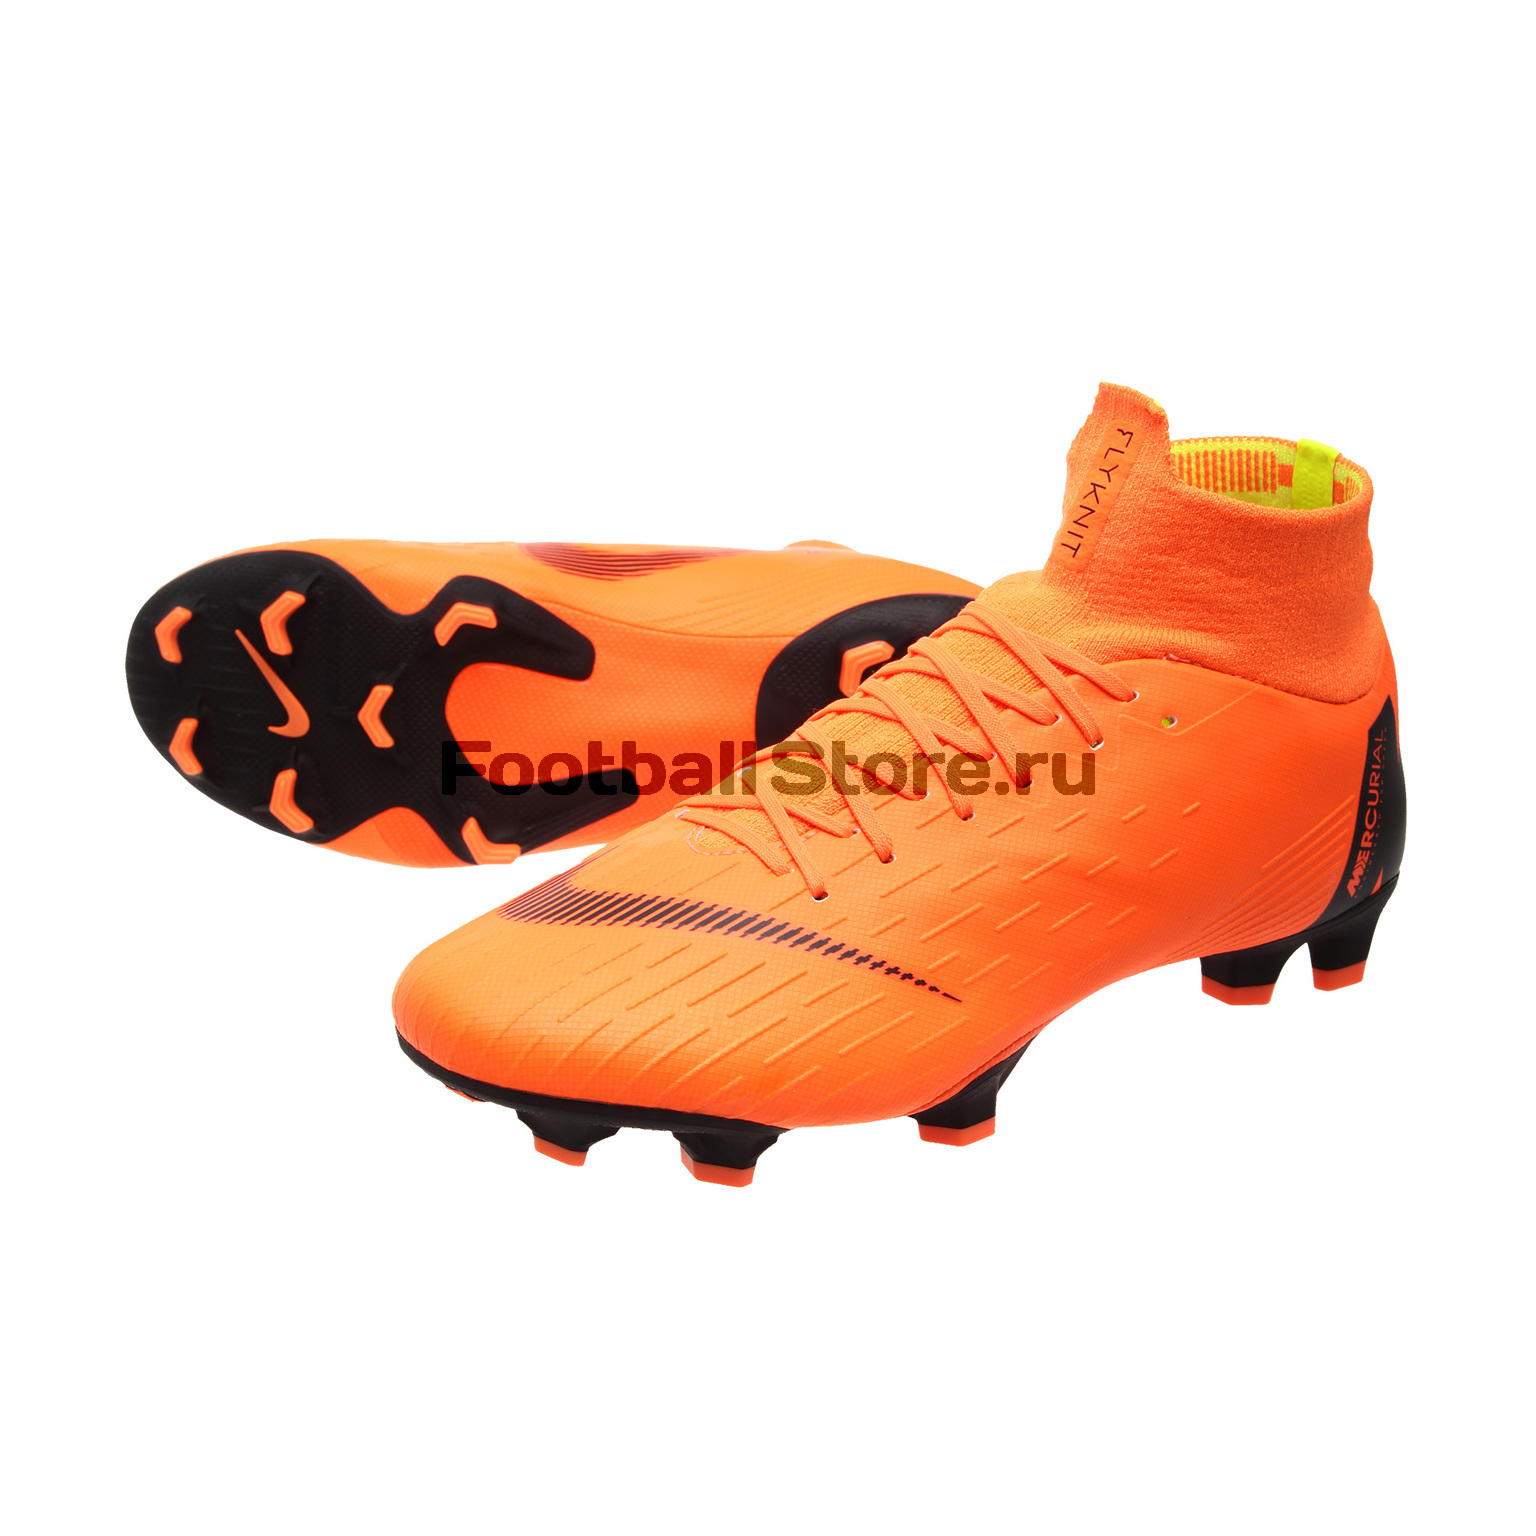 Бутсы Nike Superfly 6 Pro FG AH7368-810 бутсы nike superfly academy gs cr7 jr fg mg aj3111 390